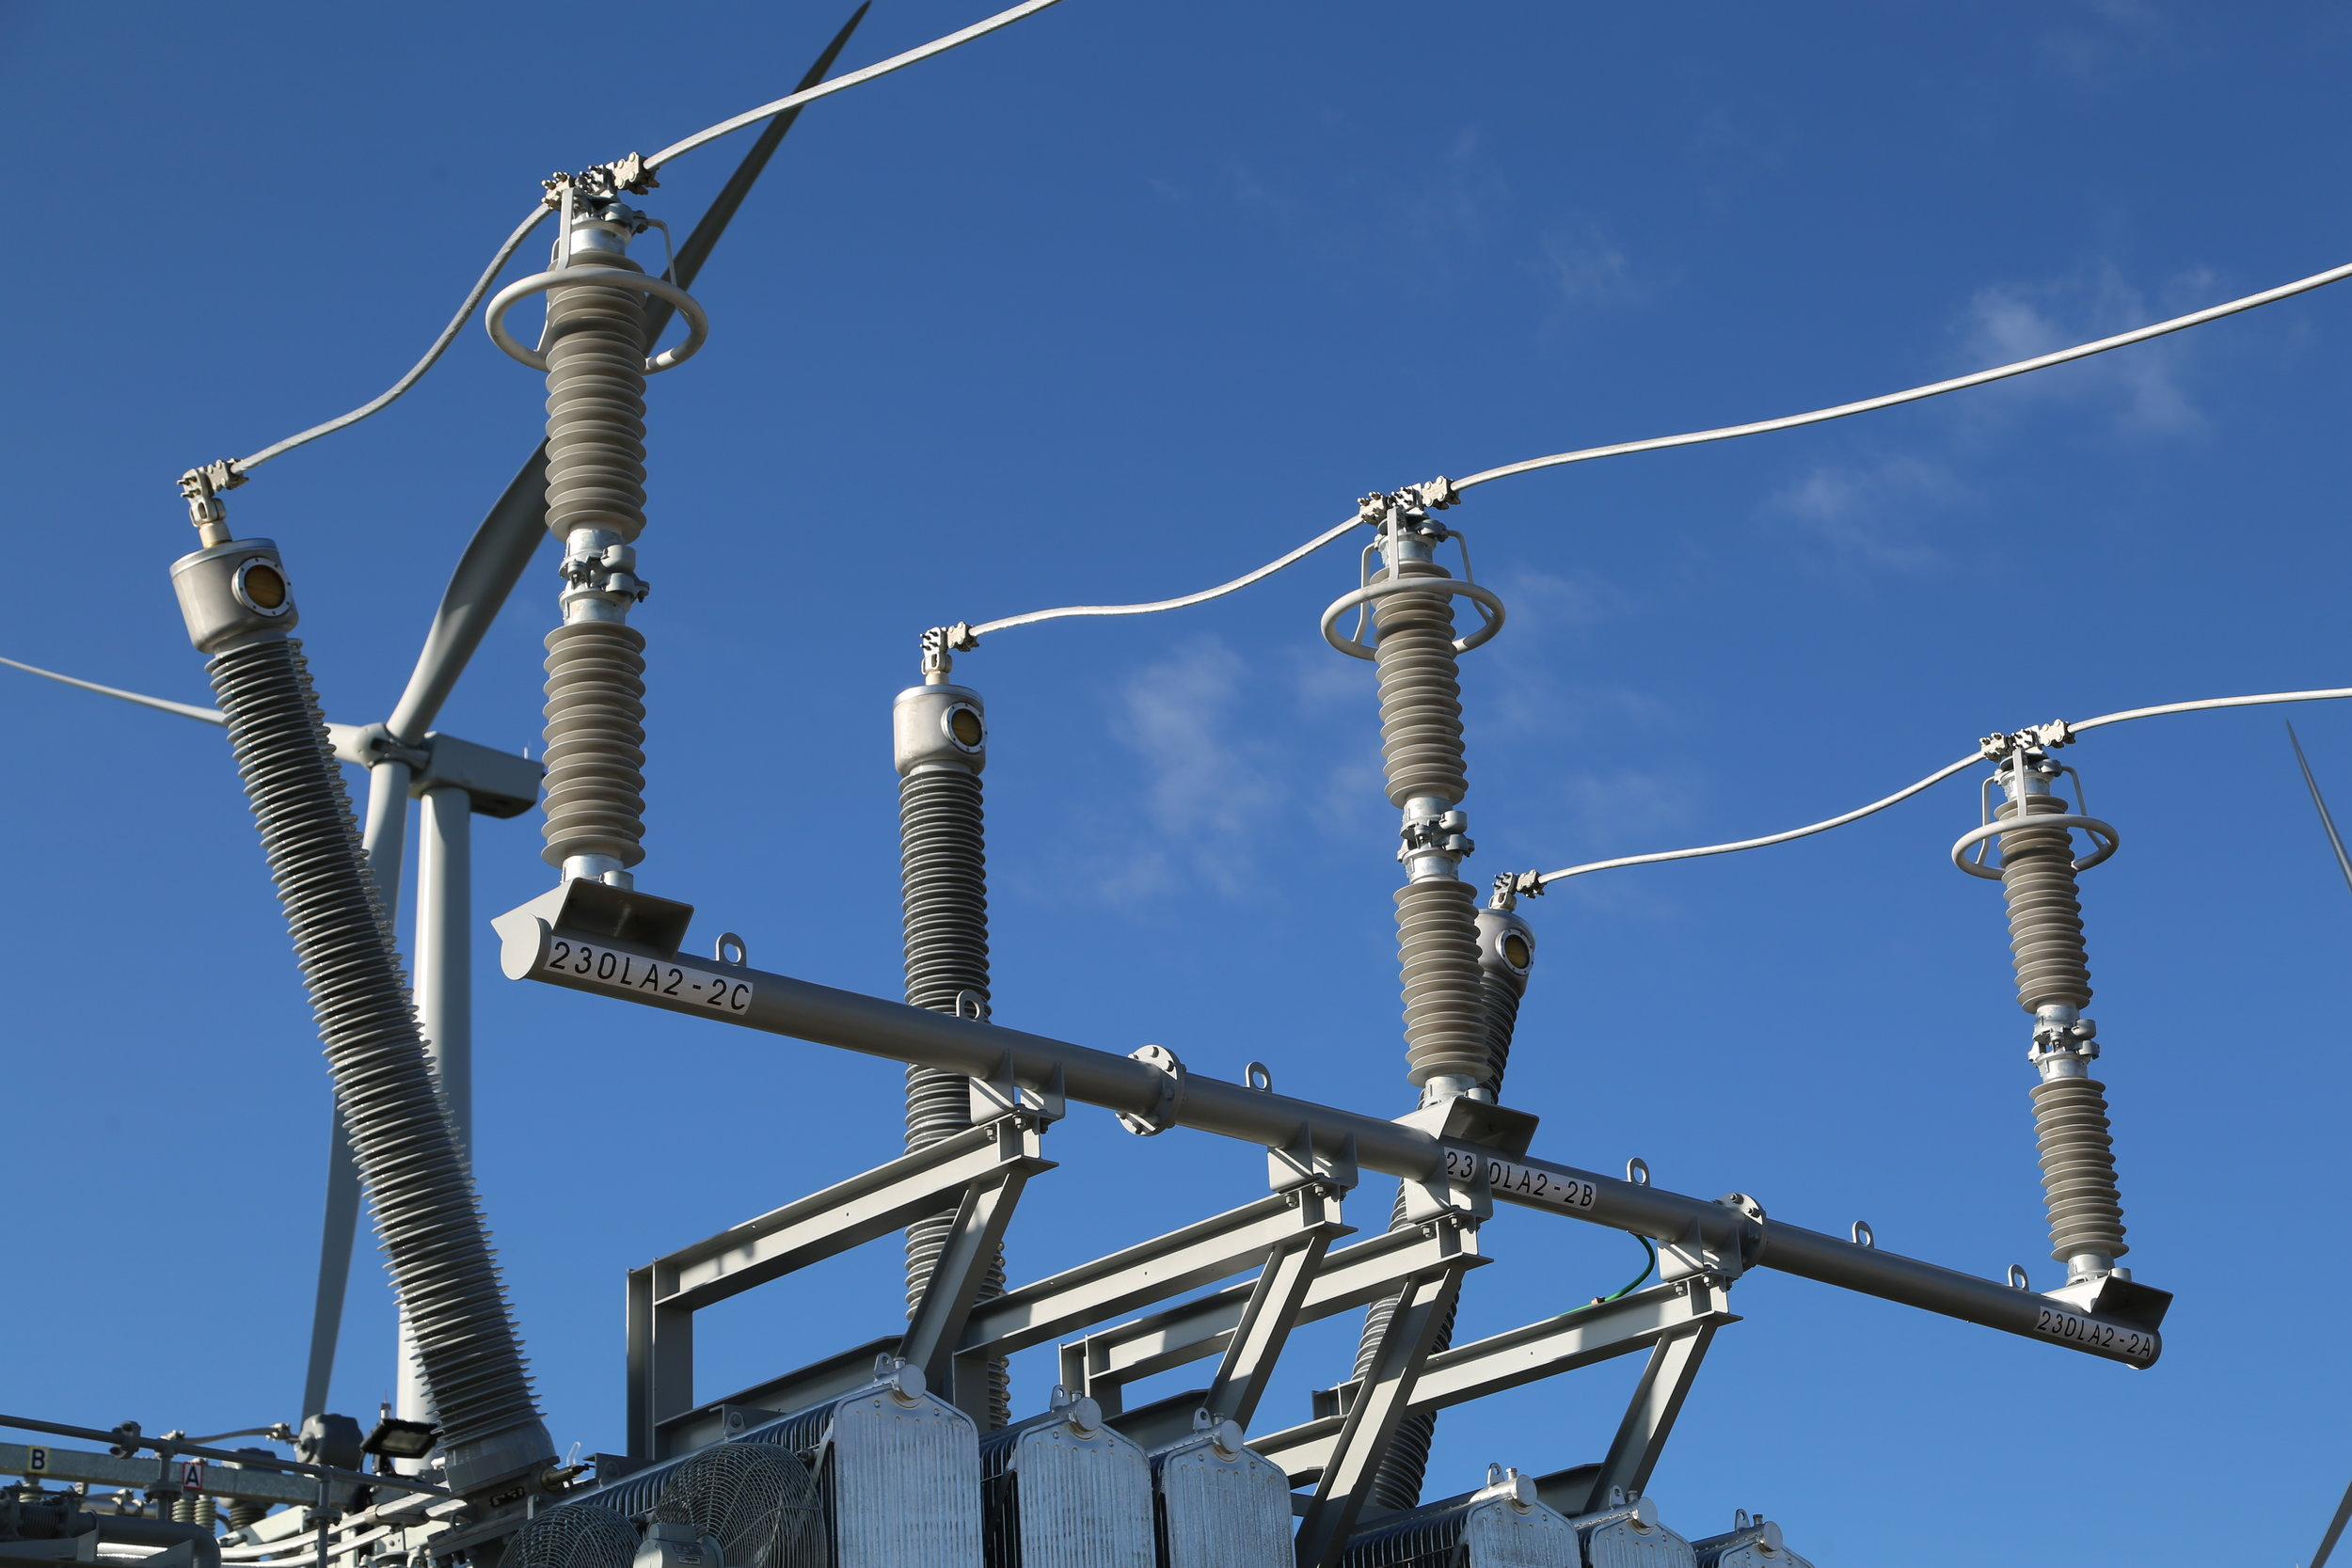 SUBSTATIONS STUDIES & EQUIPMENT APPLICATIONS